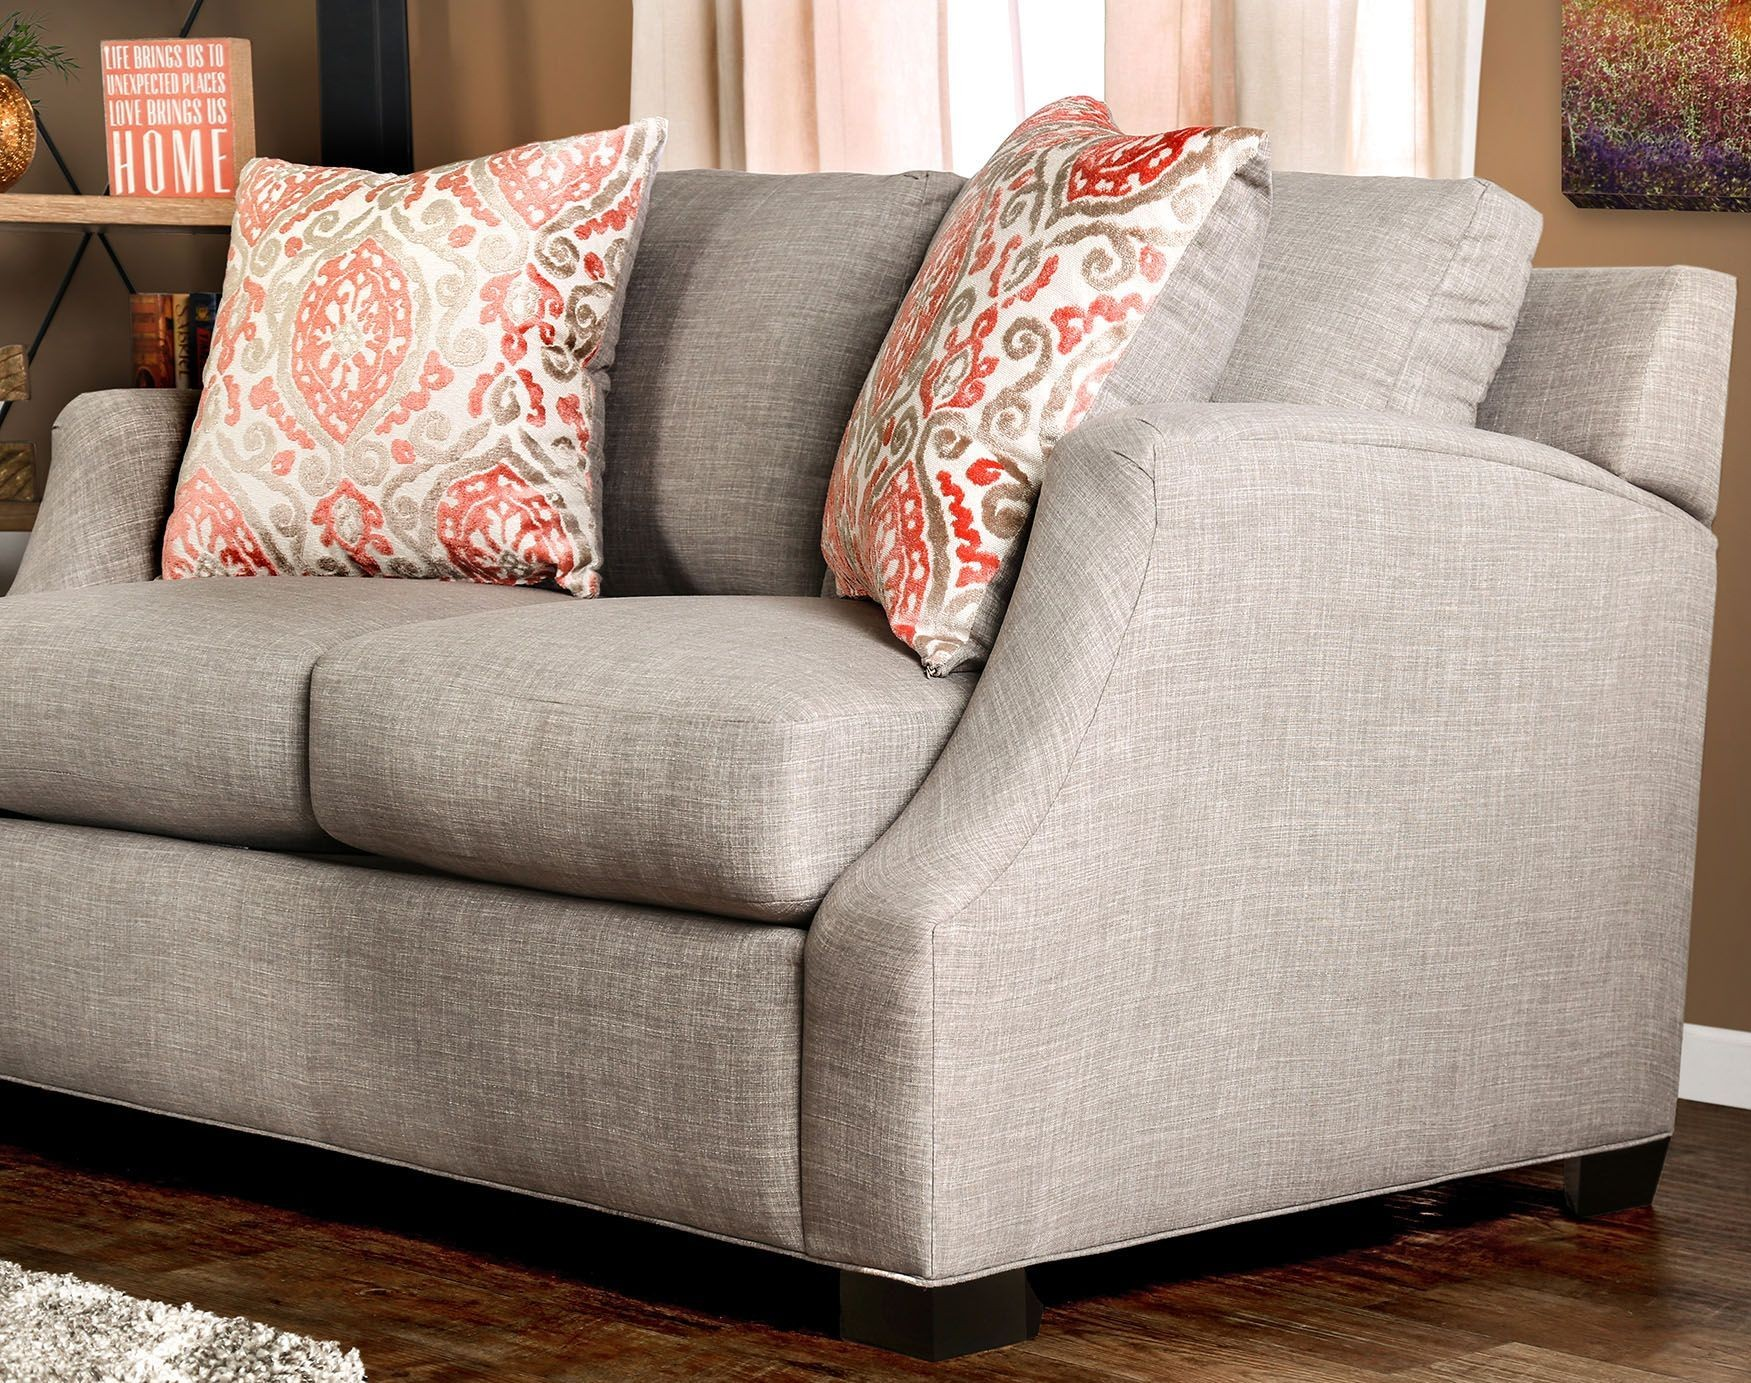 Beltran Orange and Light Gray Living Room Set from Furniture of